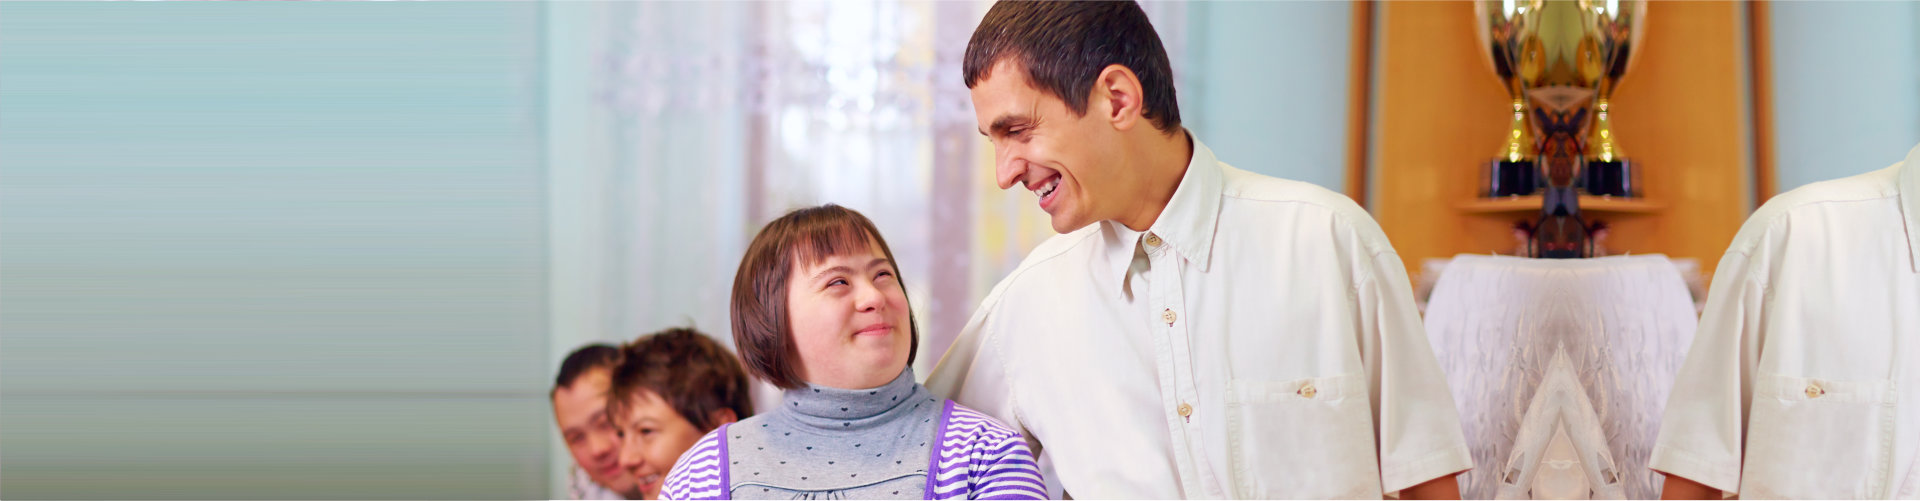 person with disablity smiling to each other